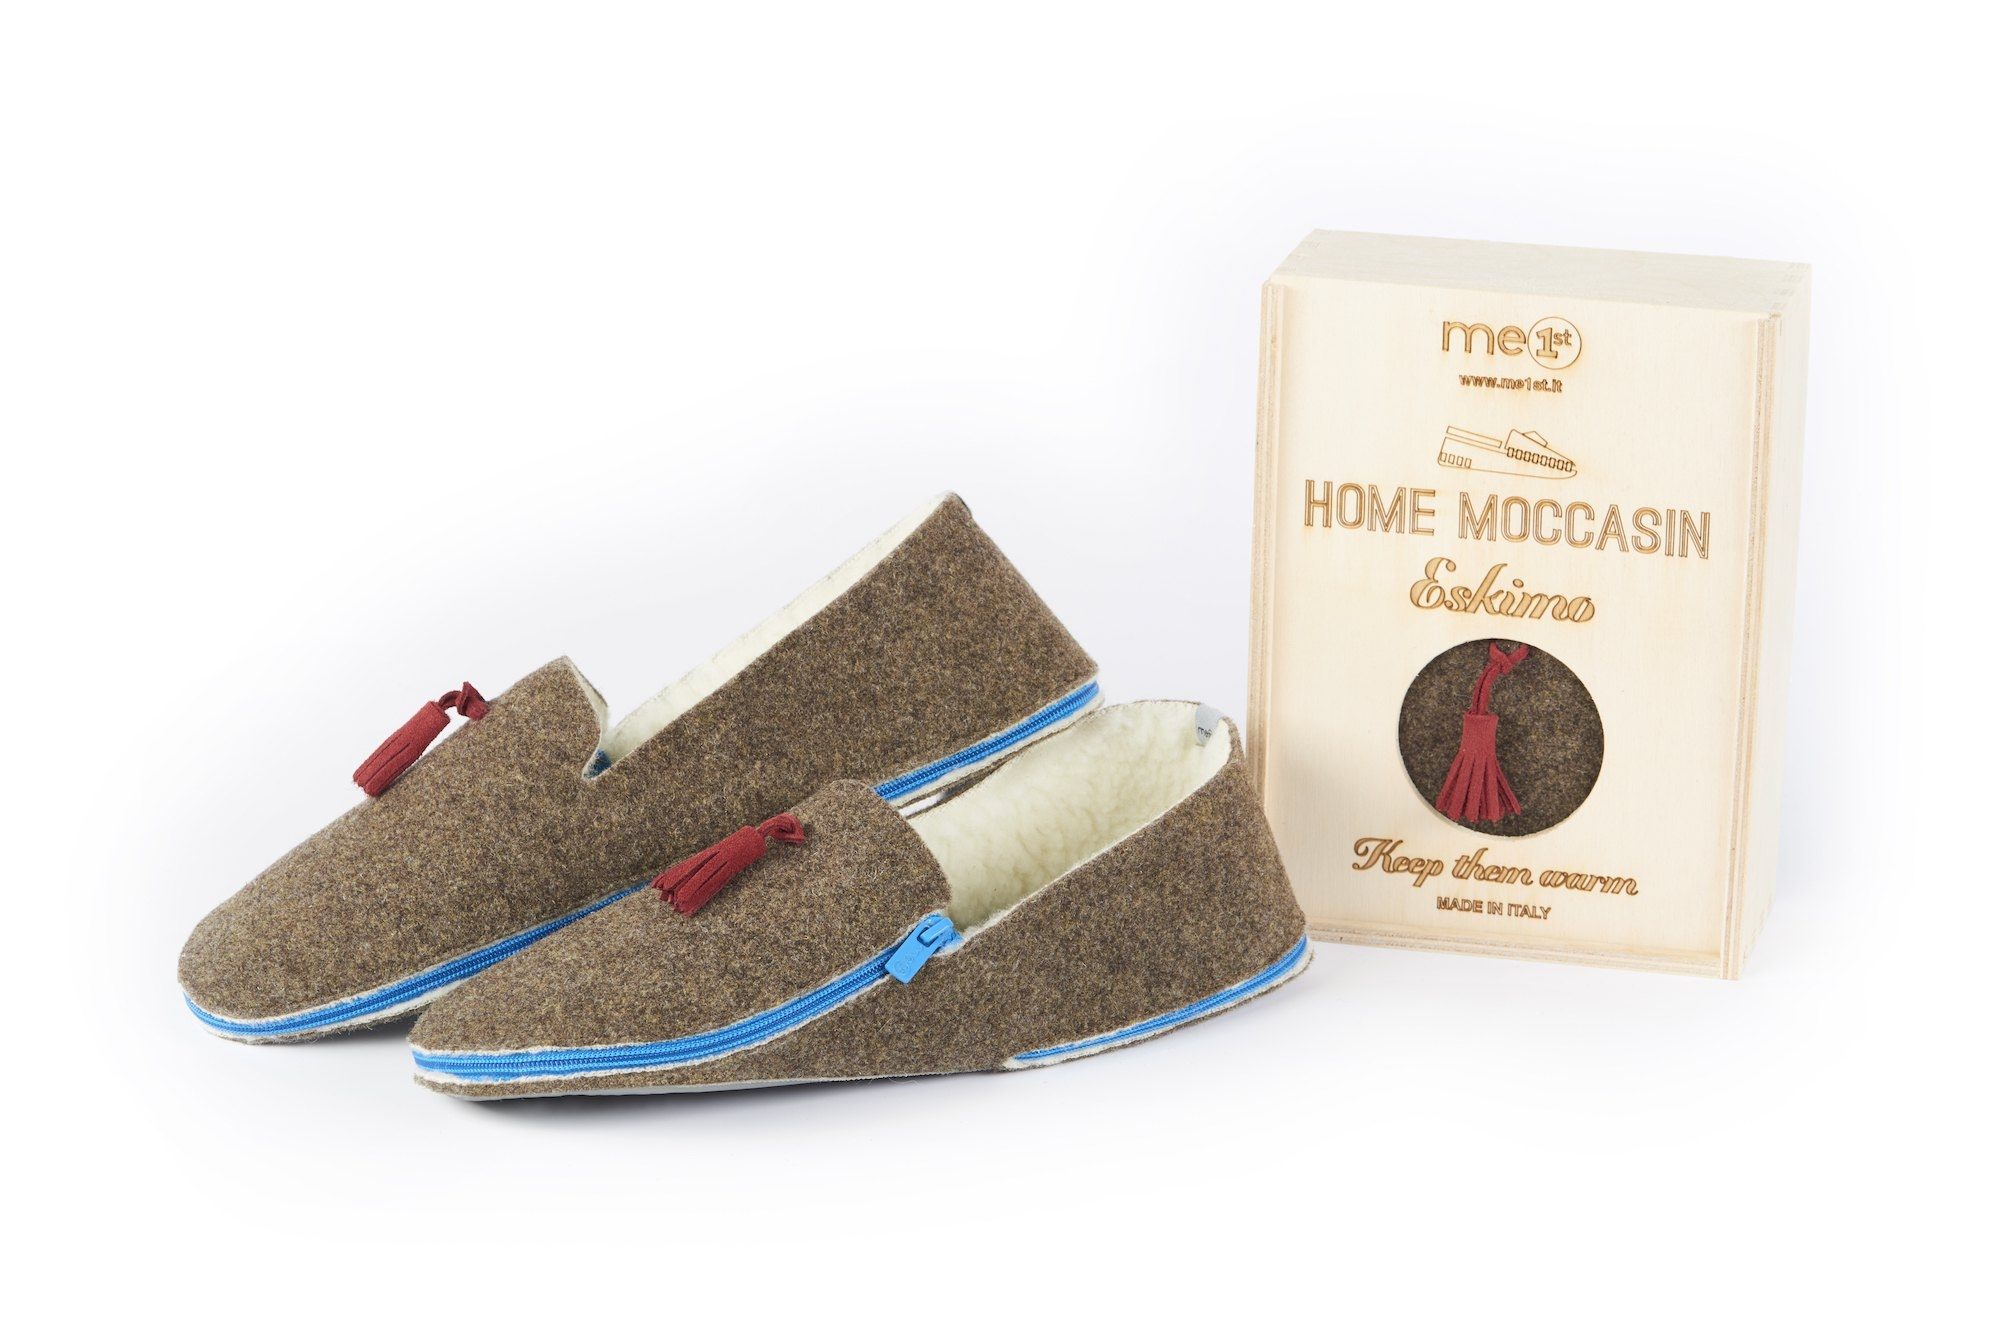 Home Moccasin Eskimo